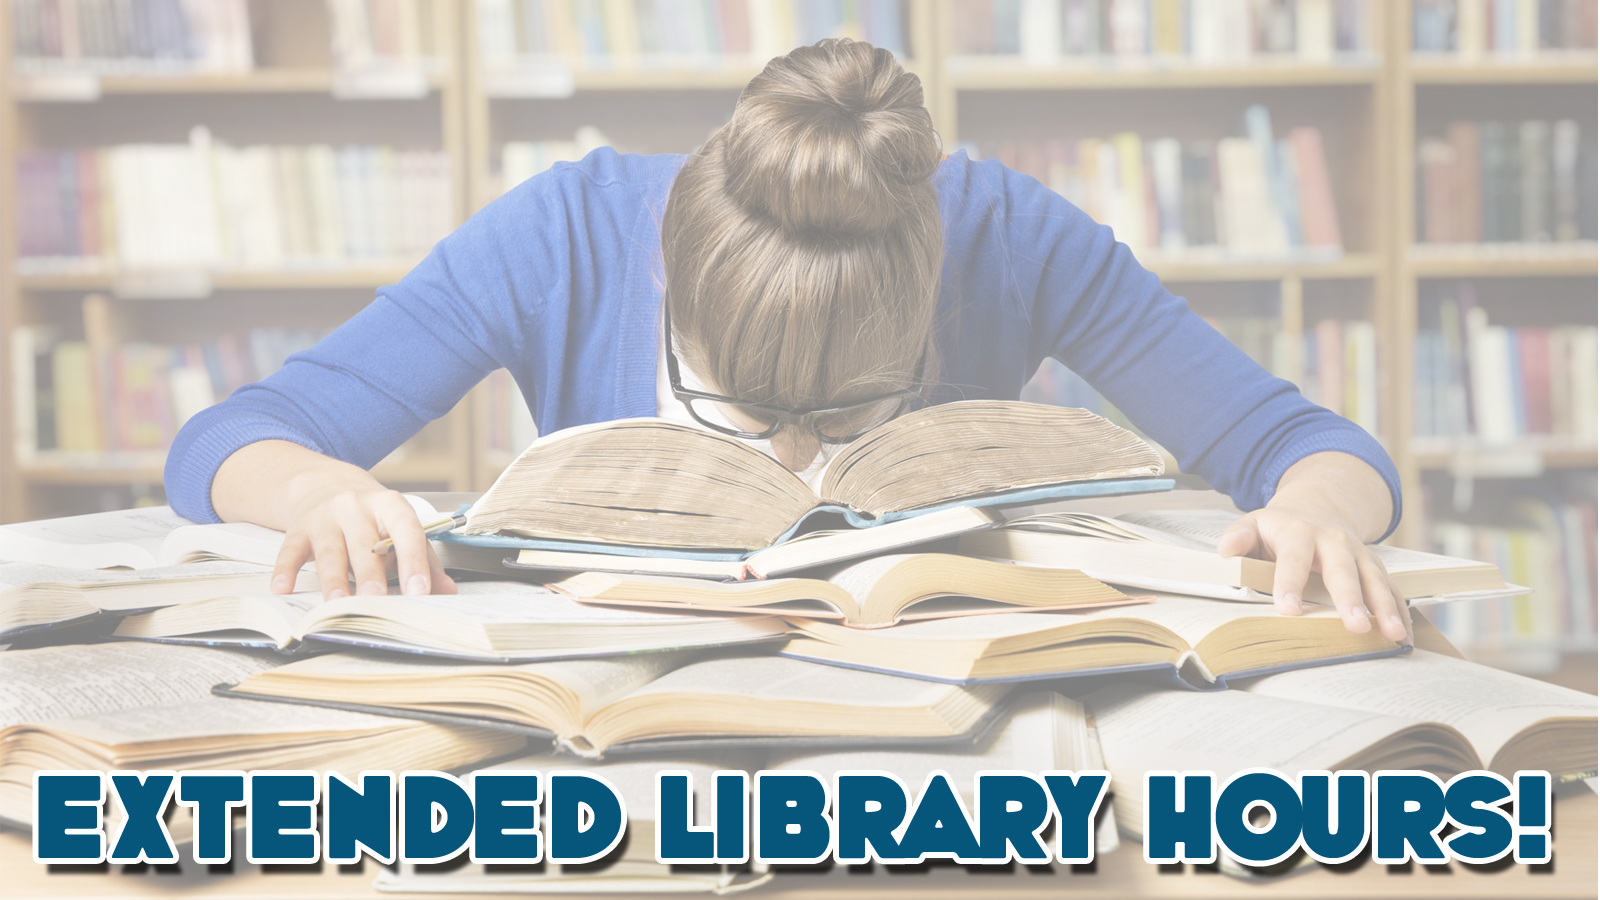 Woman's face planted in books - Description - Extended Library Hours